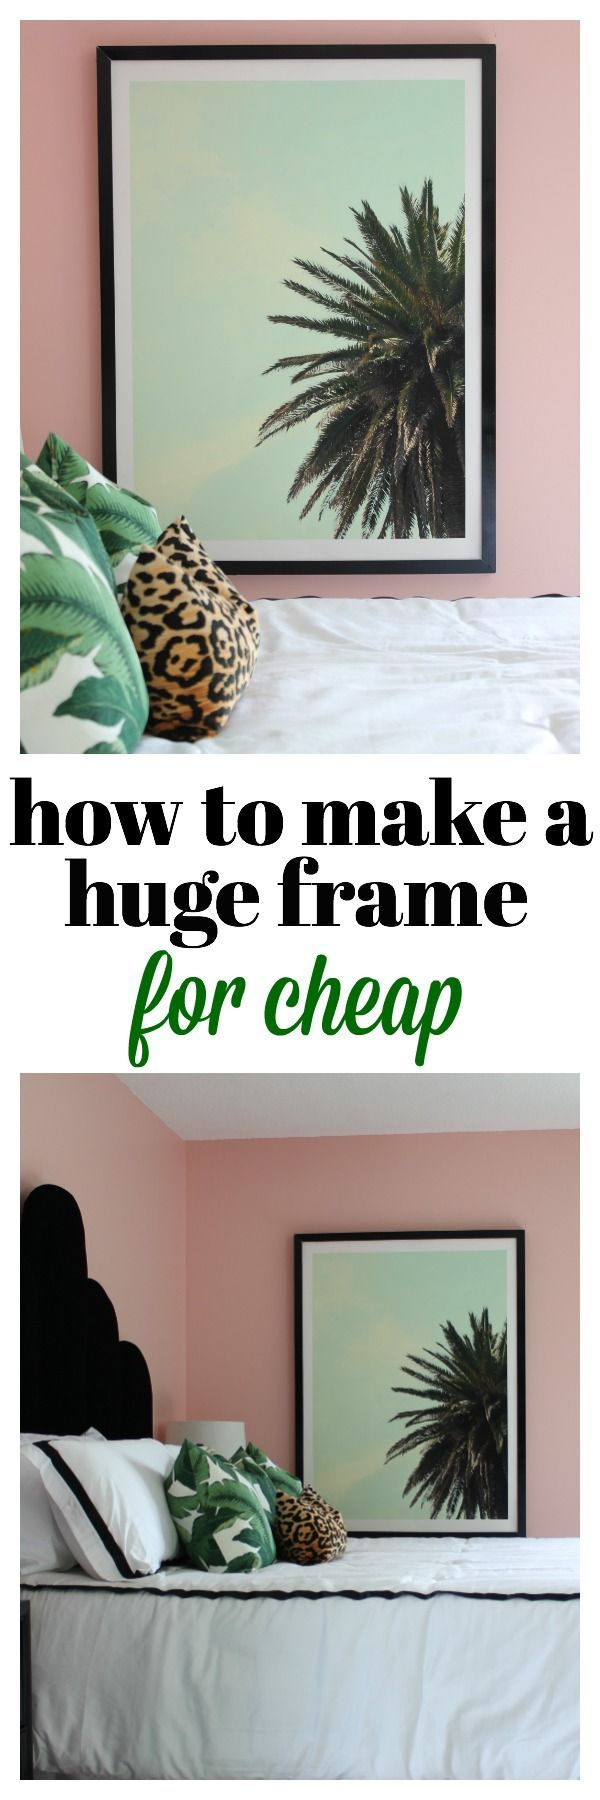 How to Make a Huge Frame | DIY Frame | How to Make a Frame | DIY Engineer Print Frame | DIY Wall Frame | DIY Huge Wall Frame DIY Wall Decor